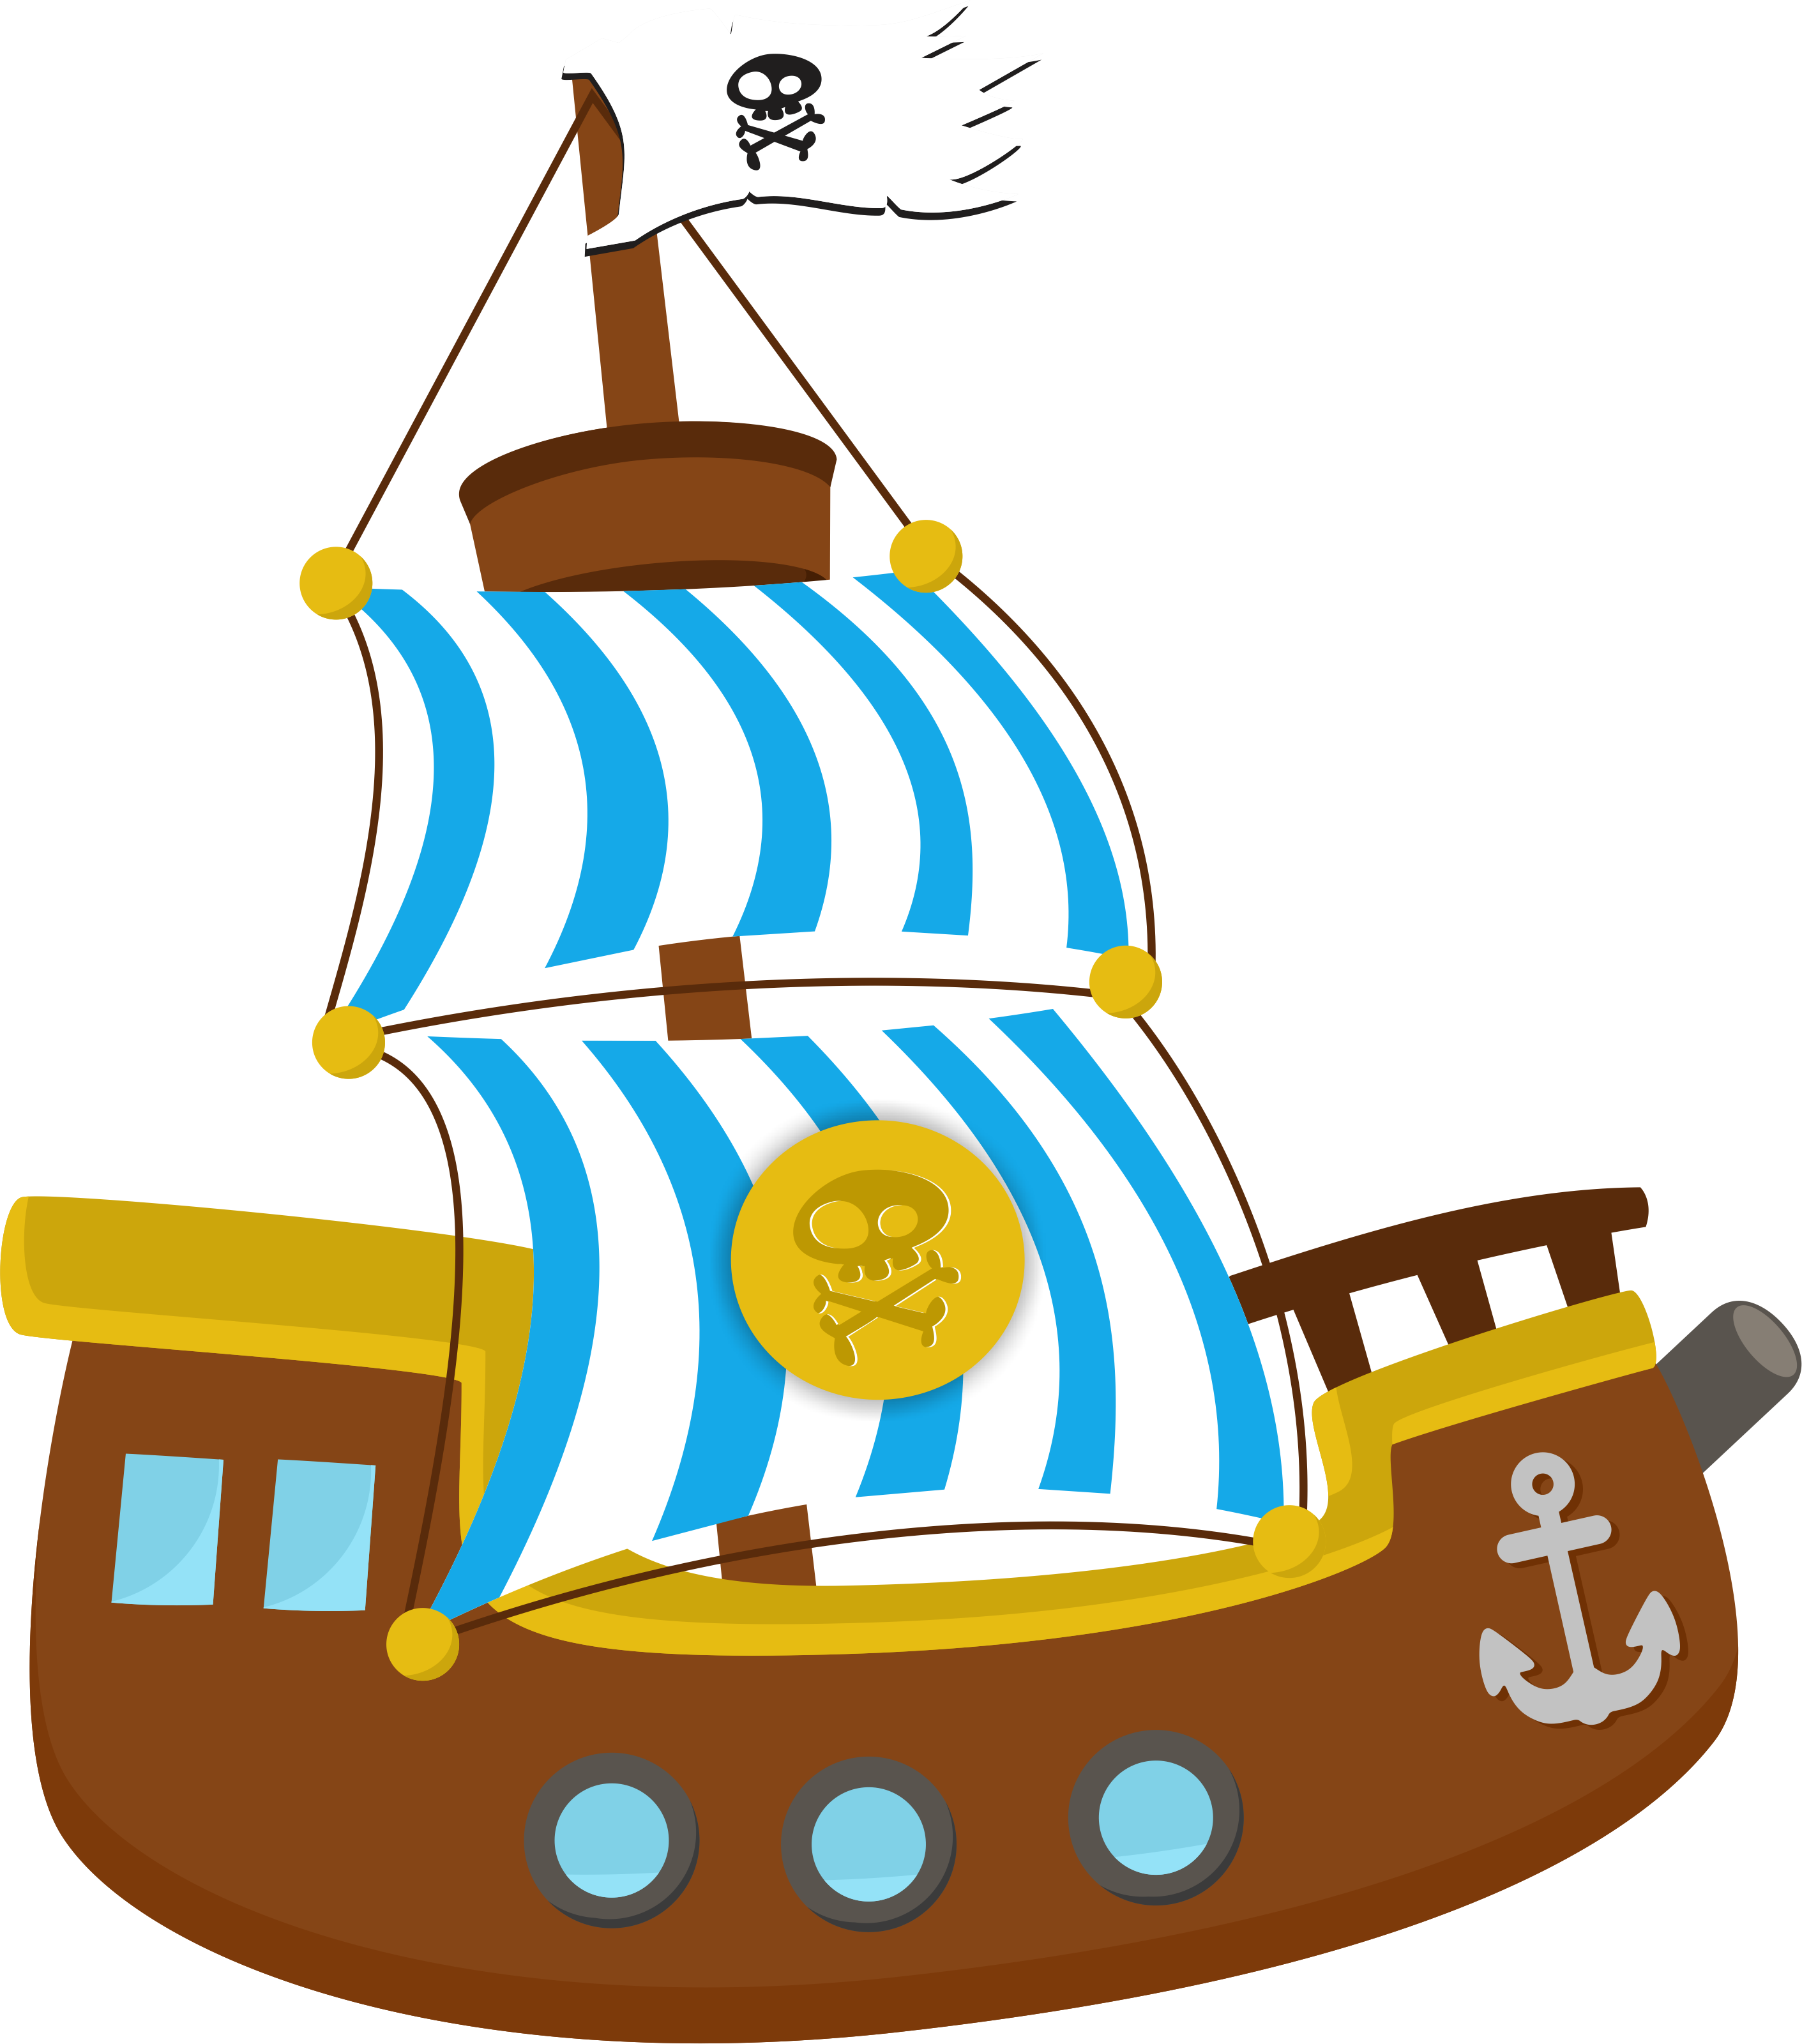 Minus selma de avila. Mayflower clipart three ship